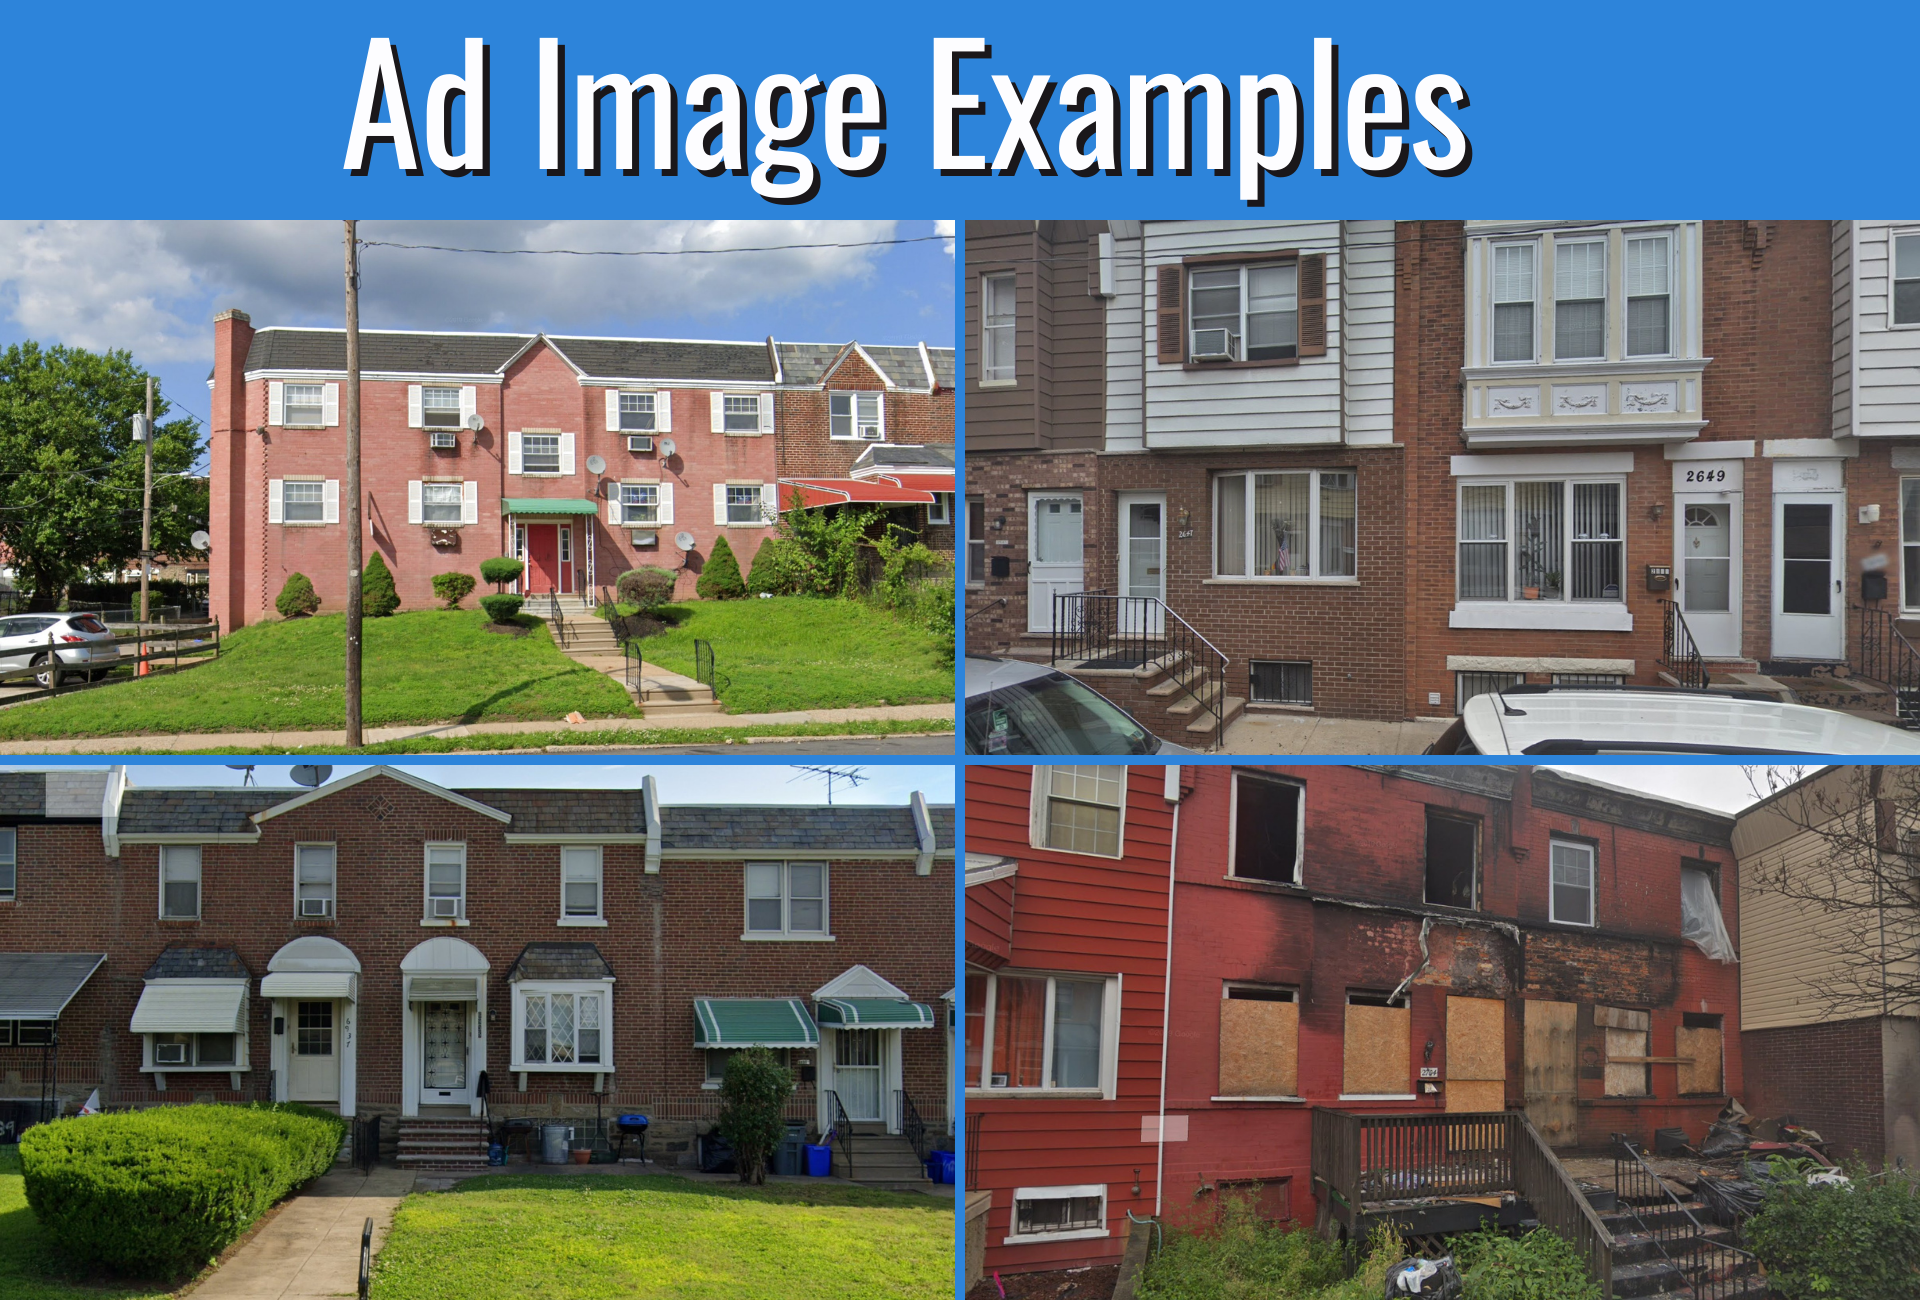 Get Motivated Seller Real Estate Leads Through Facebook - Facebook Ad Image Examples